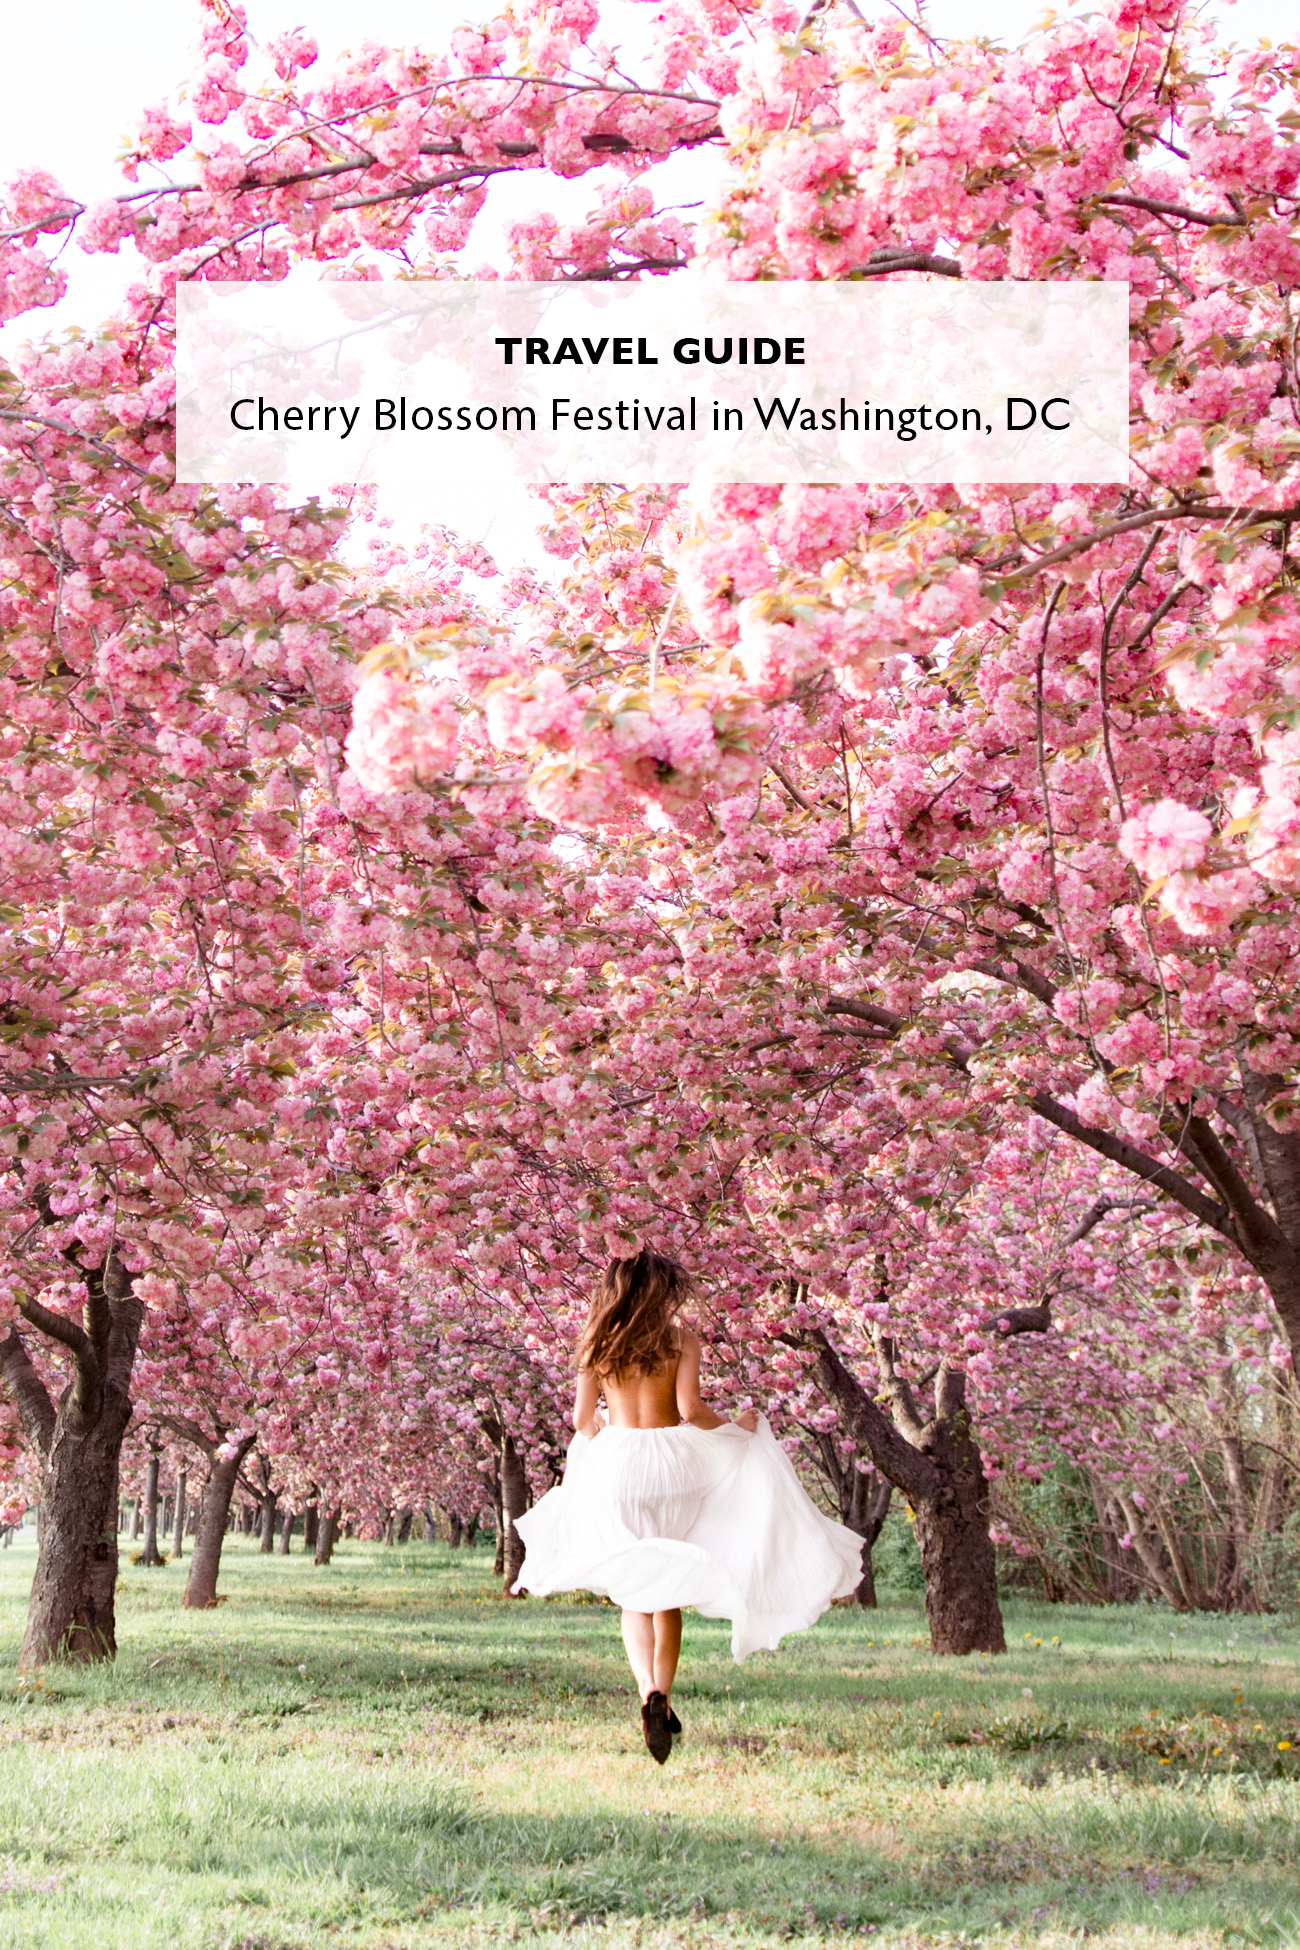 Travel Guide: Cherry Blossom Festival in Washington, D.C.